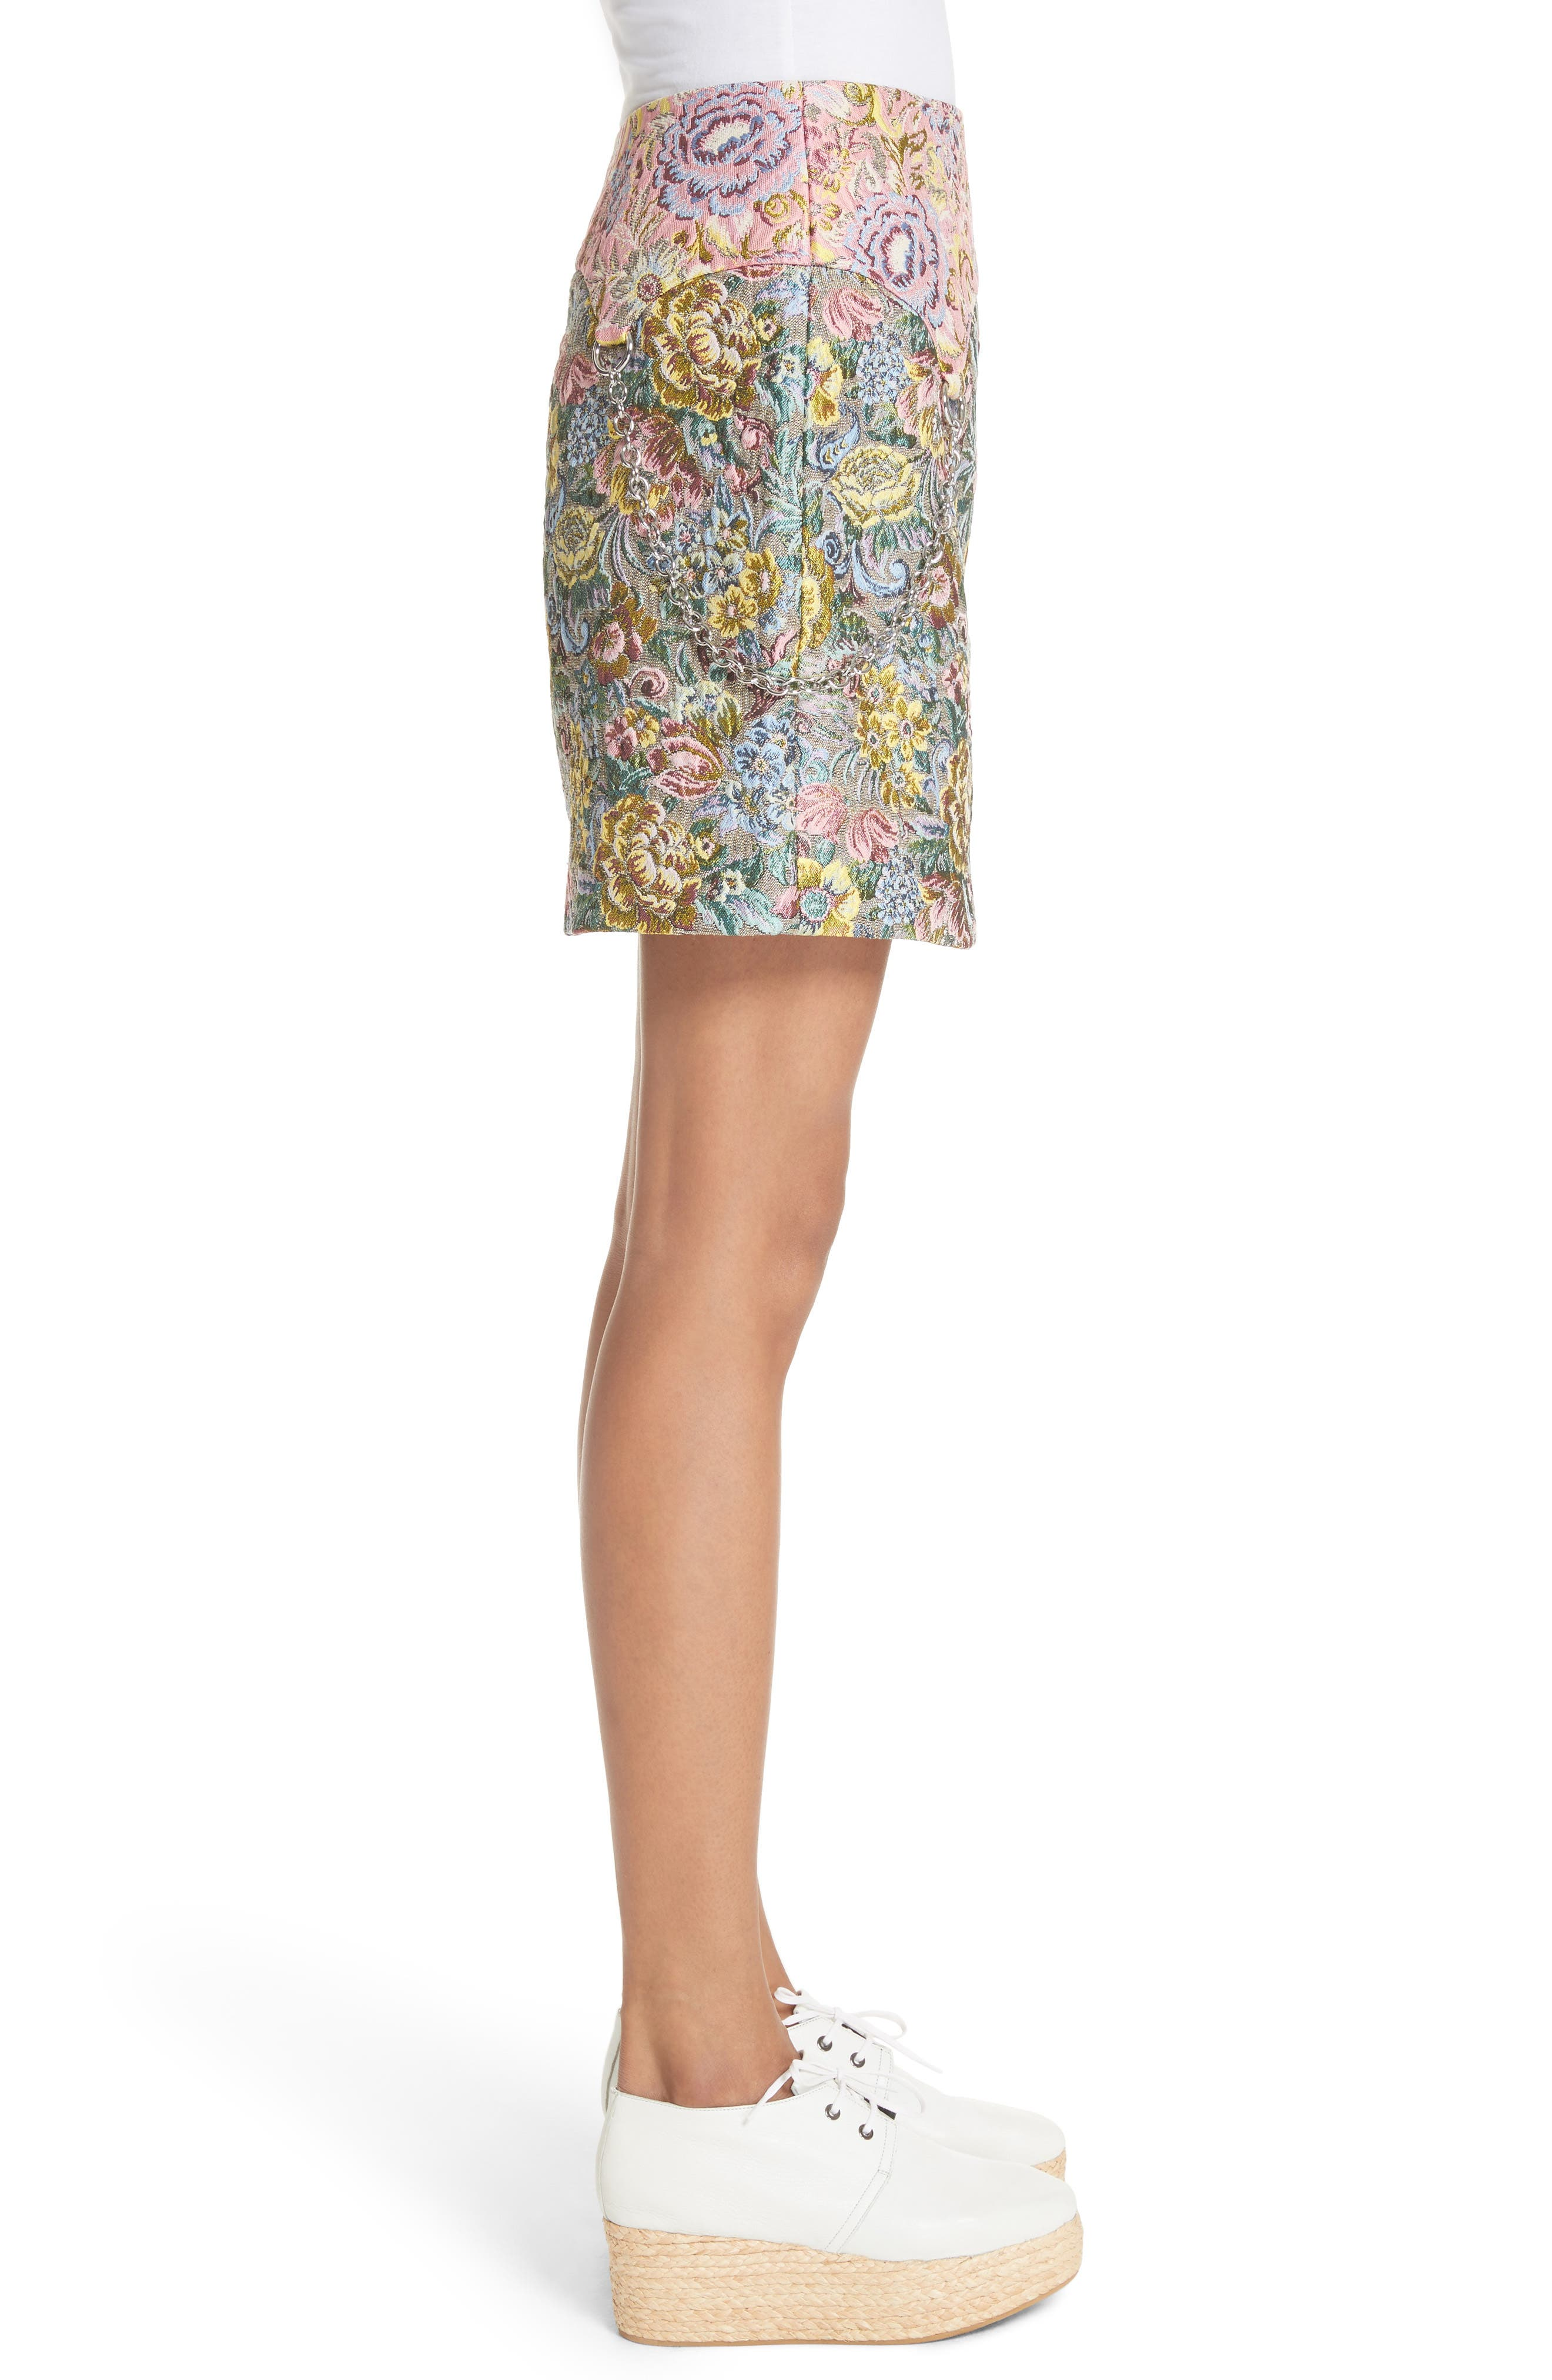 Chatham Brocade Miniskirt,                             Alternate thumbnail 3, color,                             Couch